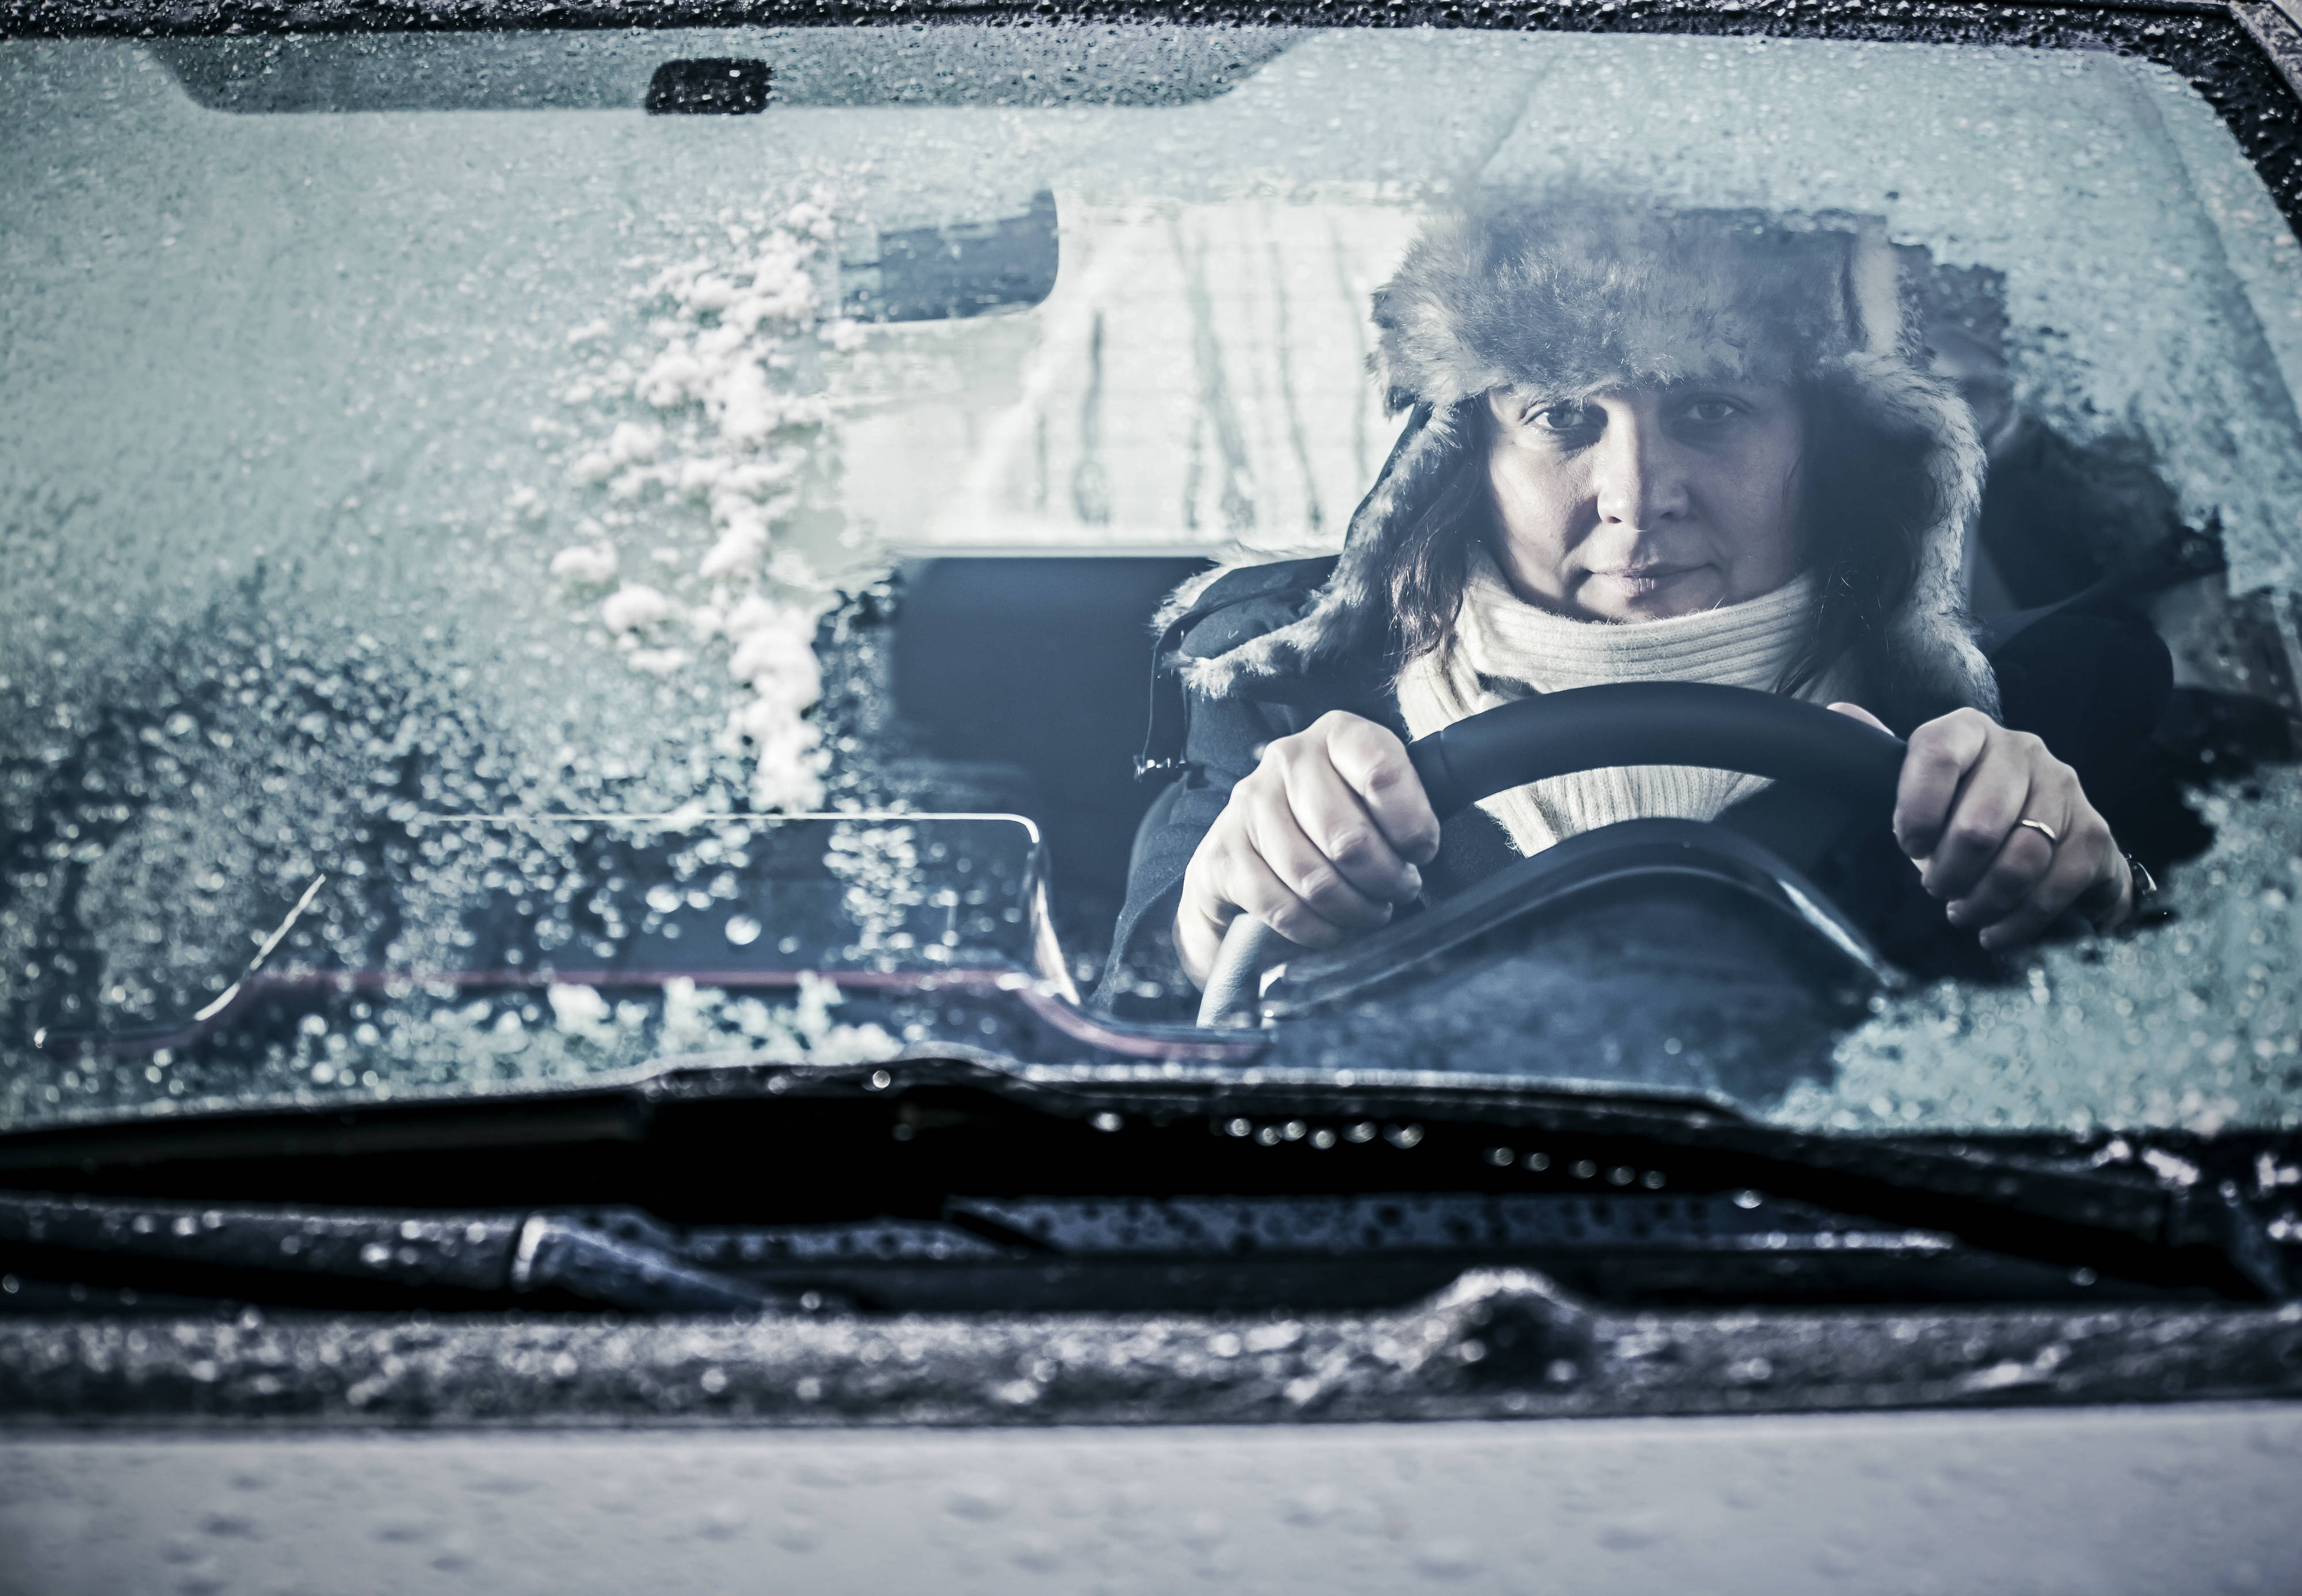 Driving in winter with air conditioning